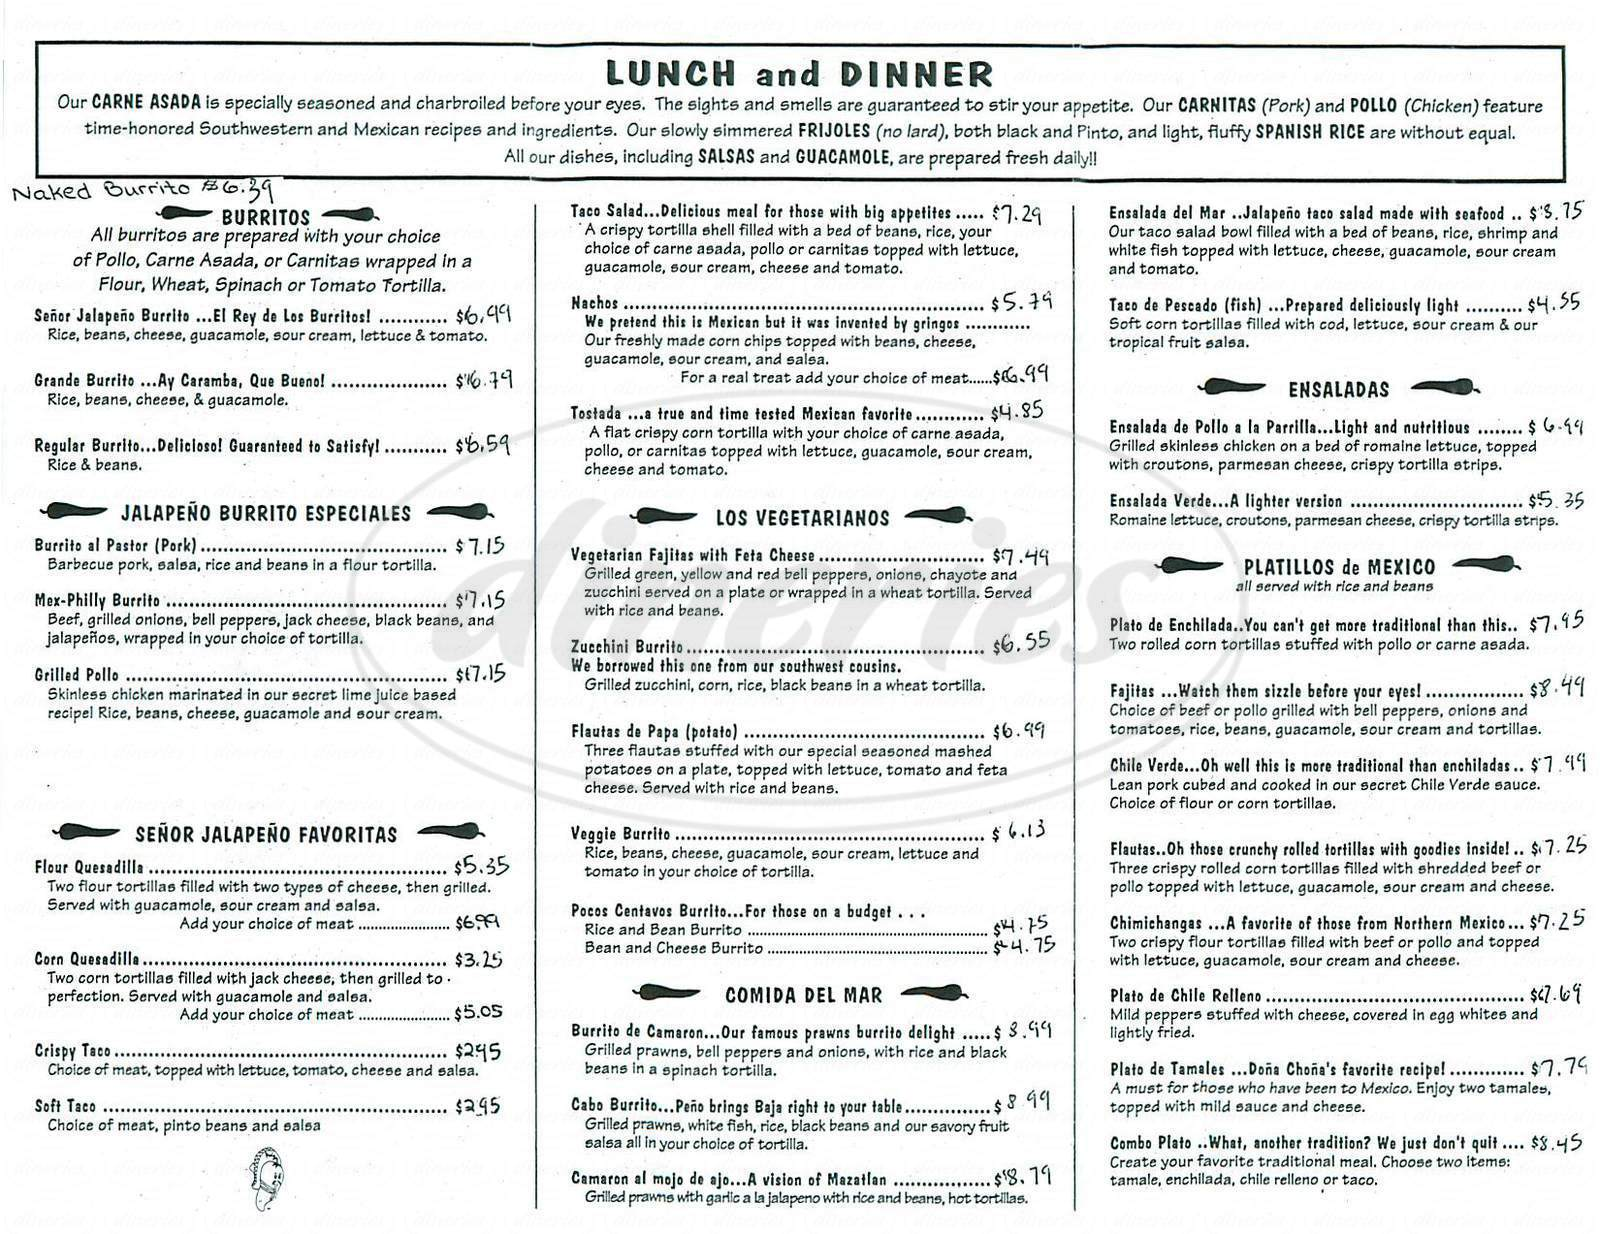 menu for Senor Jalapeno